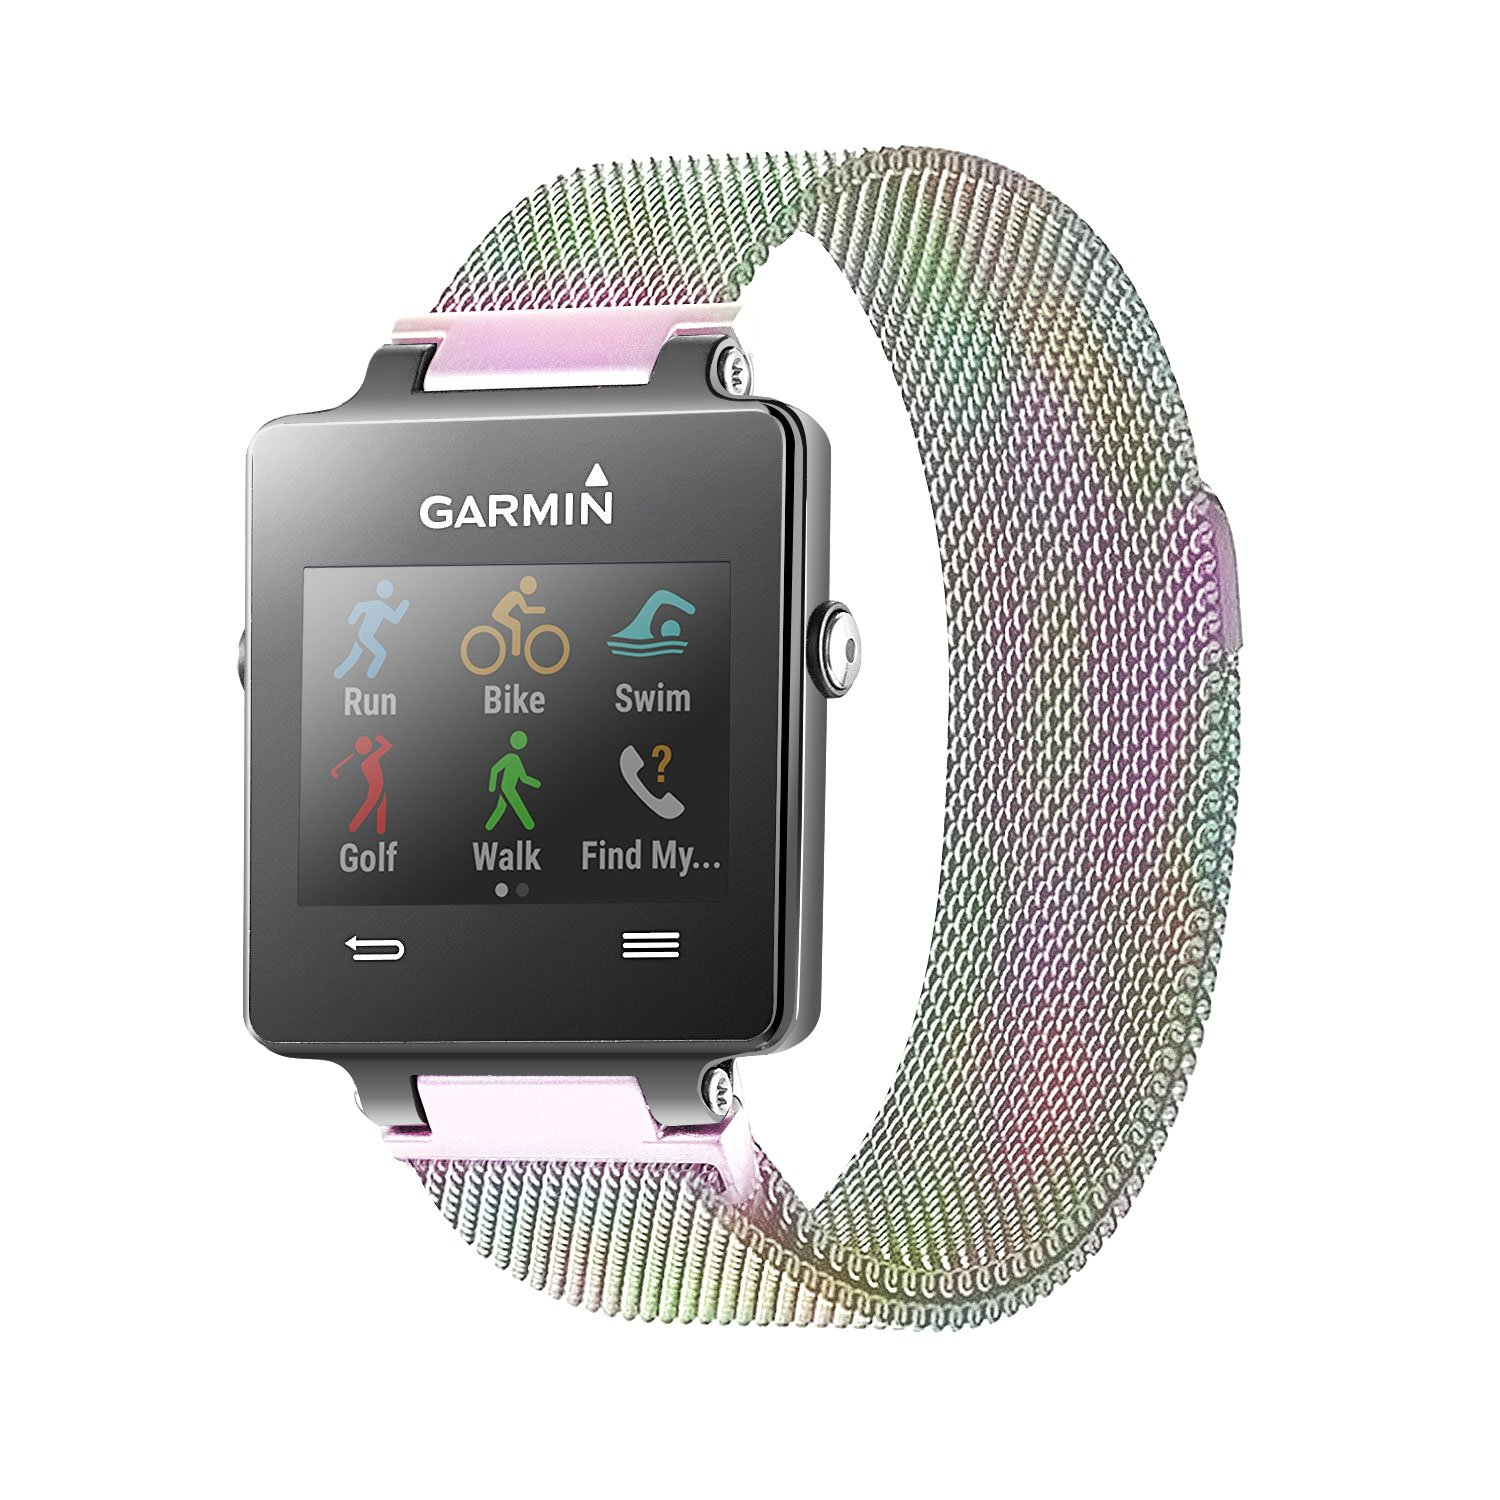 C2D JOY Garmin Vivoactive Milanese Replacement Bands Milanese Stainless Steel Bands For Garmin Vivoactive With Unique Magnet Lock, No Buckle Needed,Small Large Black(6.1-9.0)